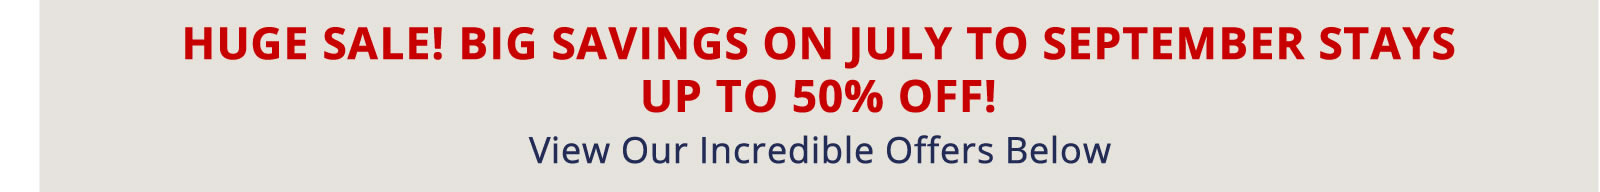 Book Now for Big Savings on July to September Stays. Up to 50% off!